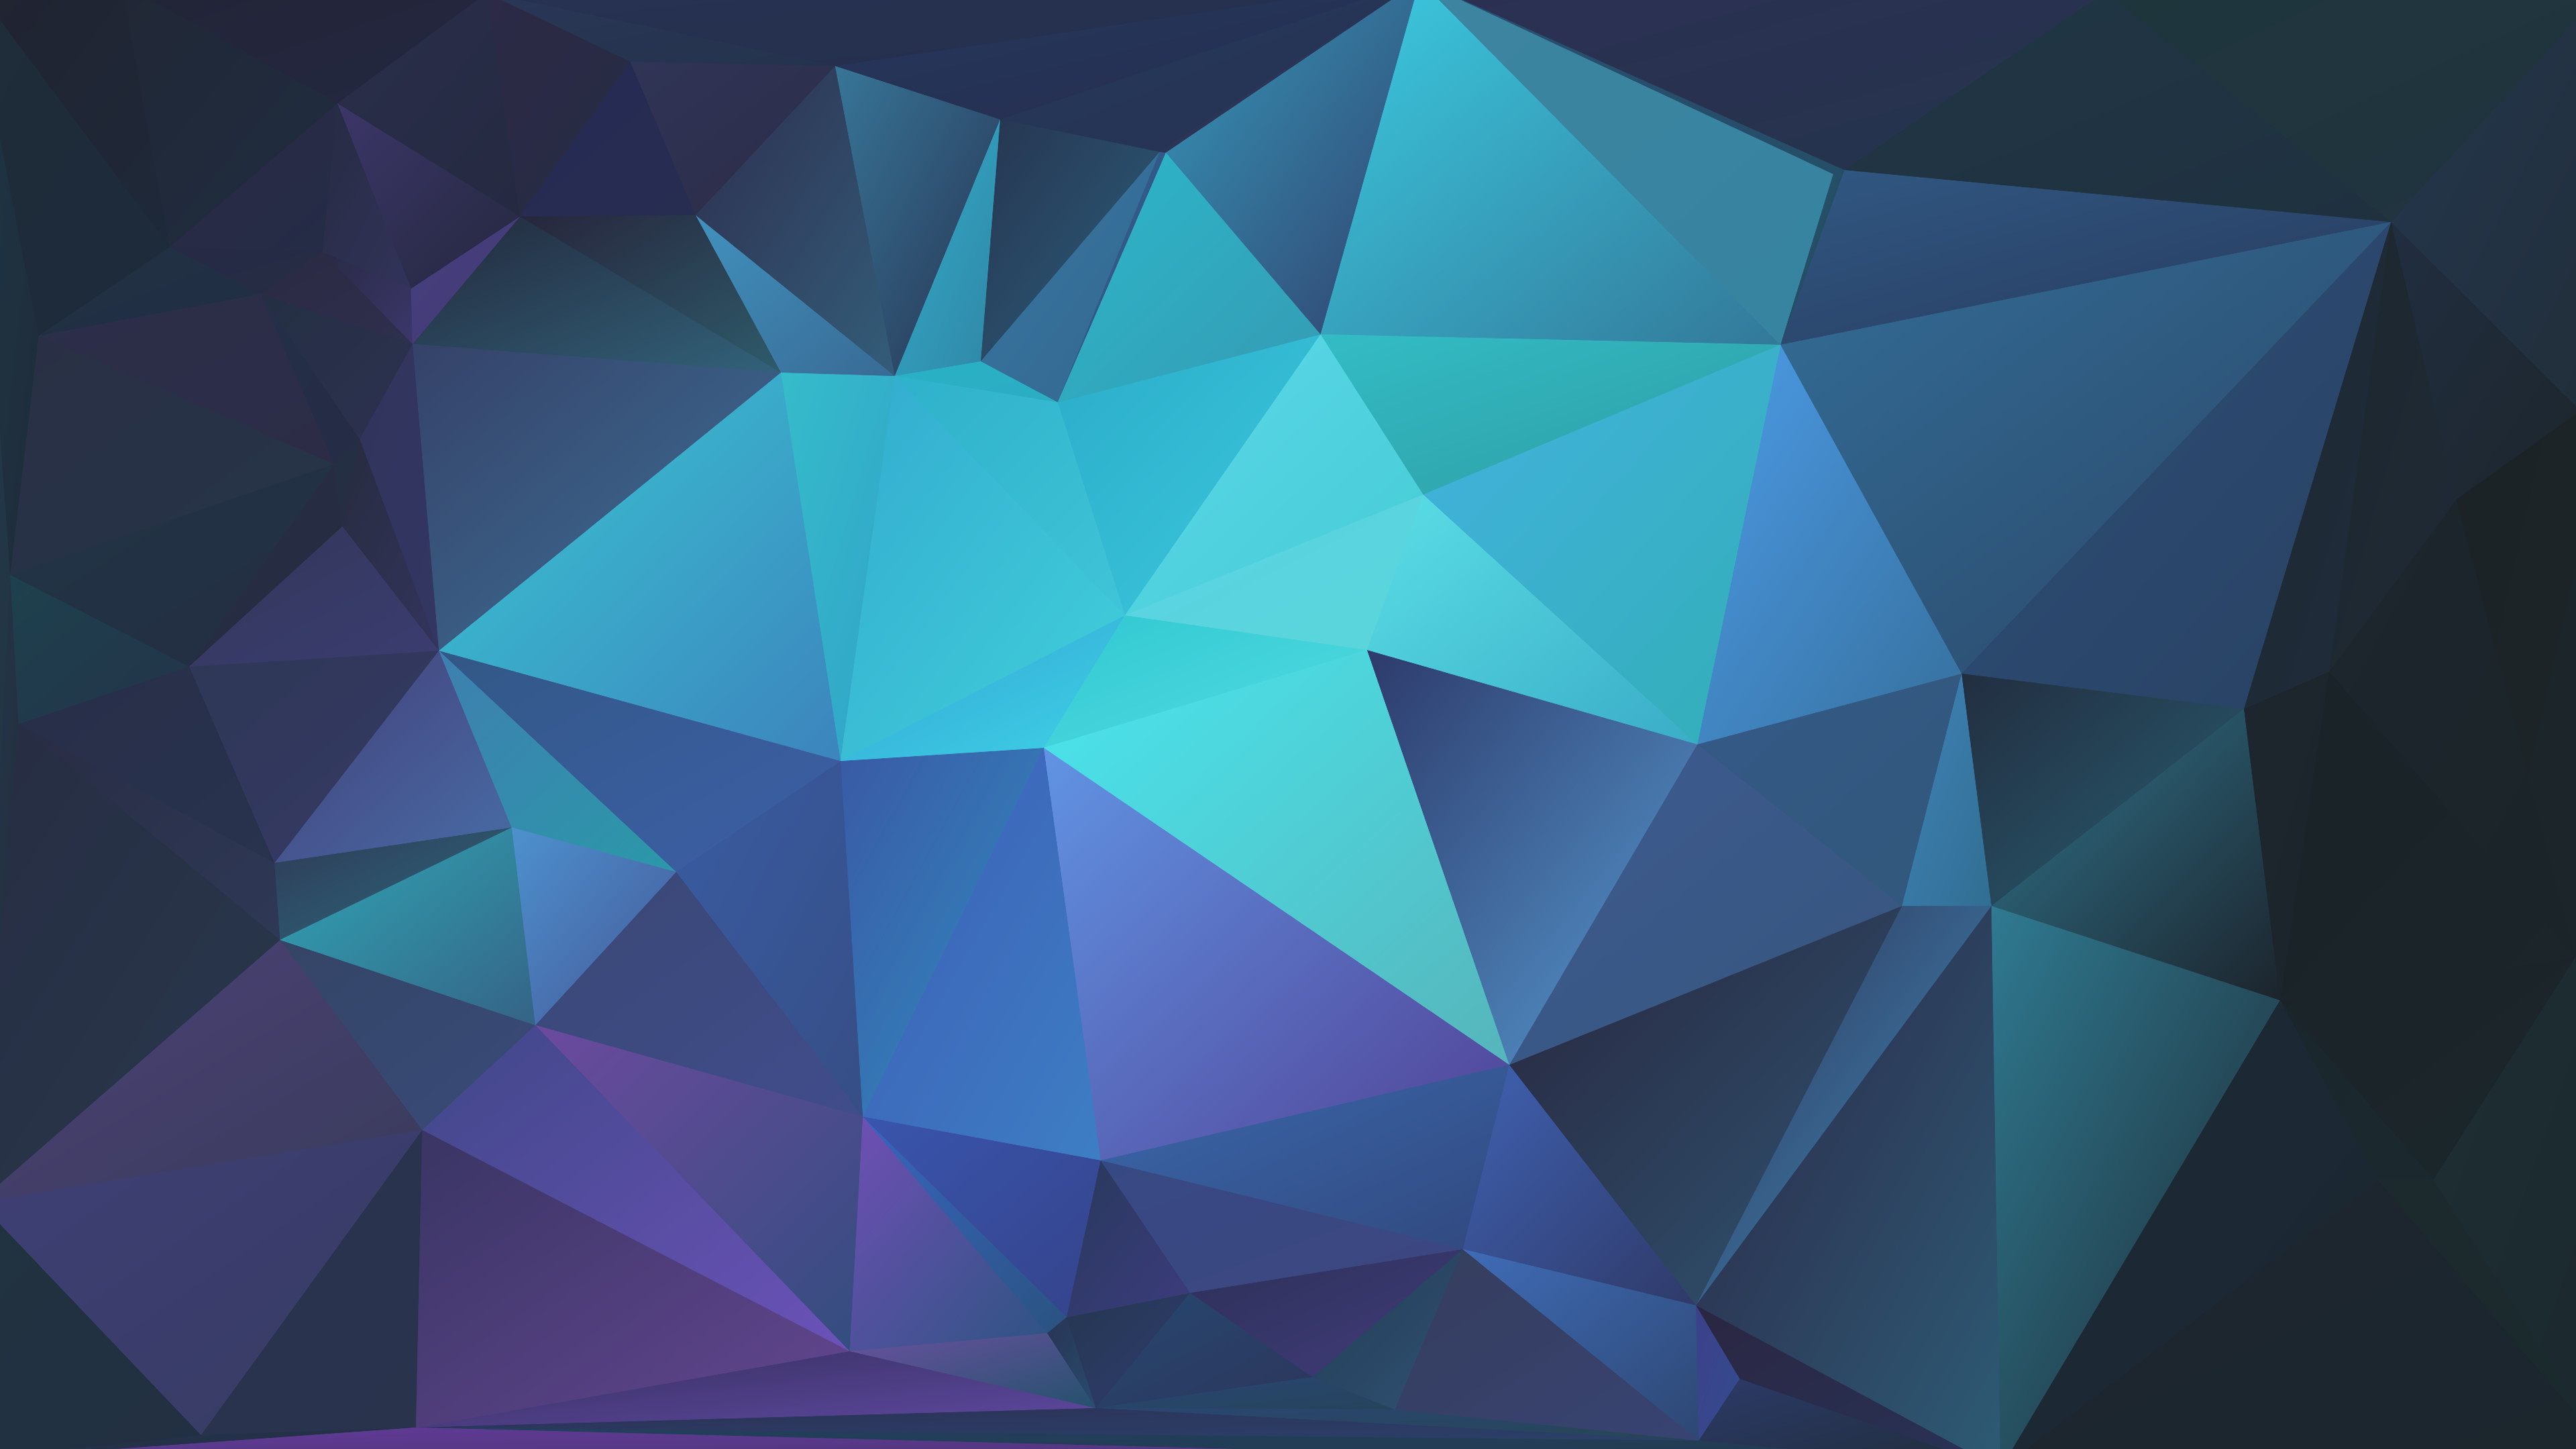 3840x2160] Light blue and dark blue polygonal background I made in ...